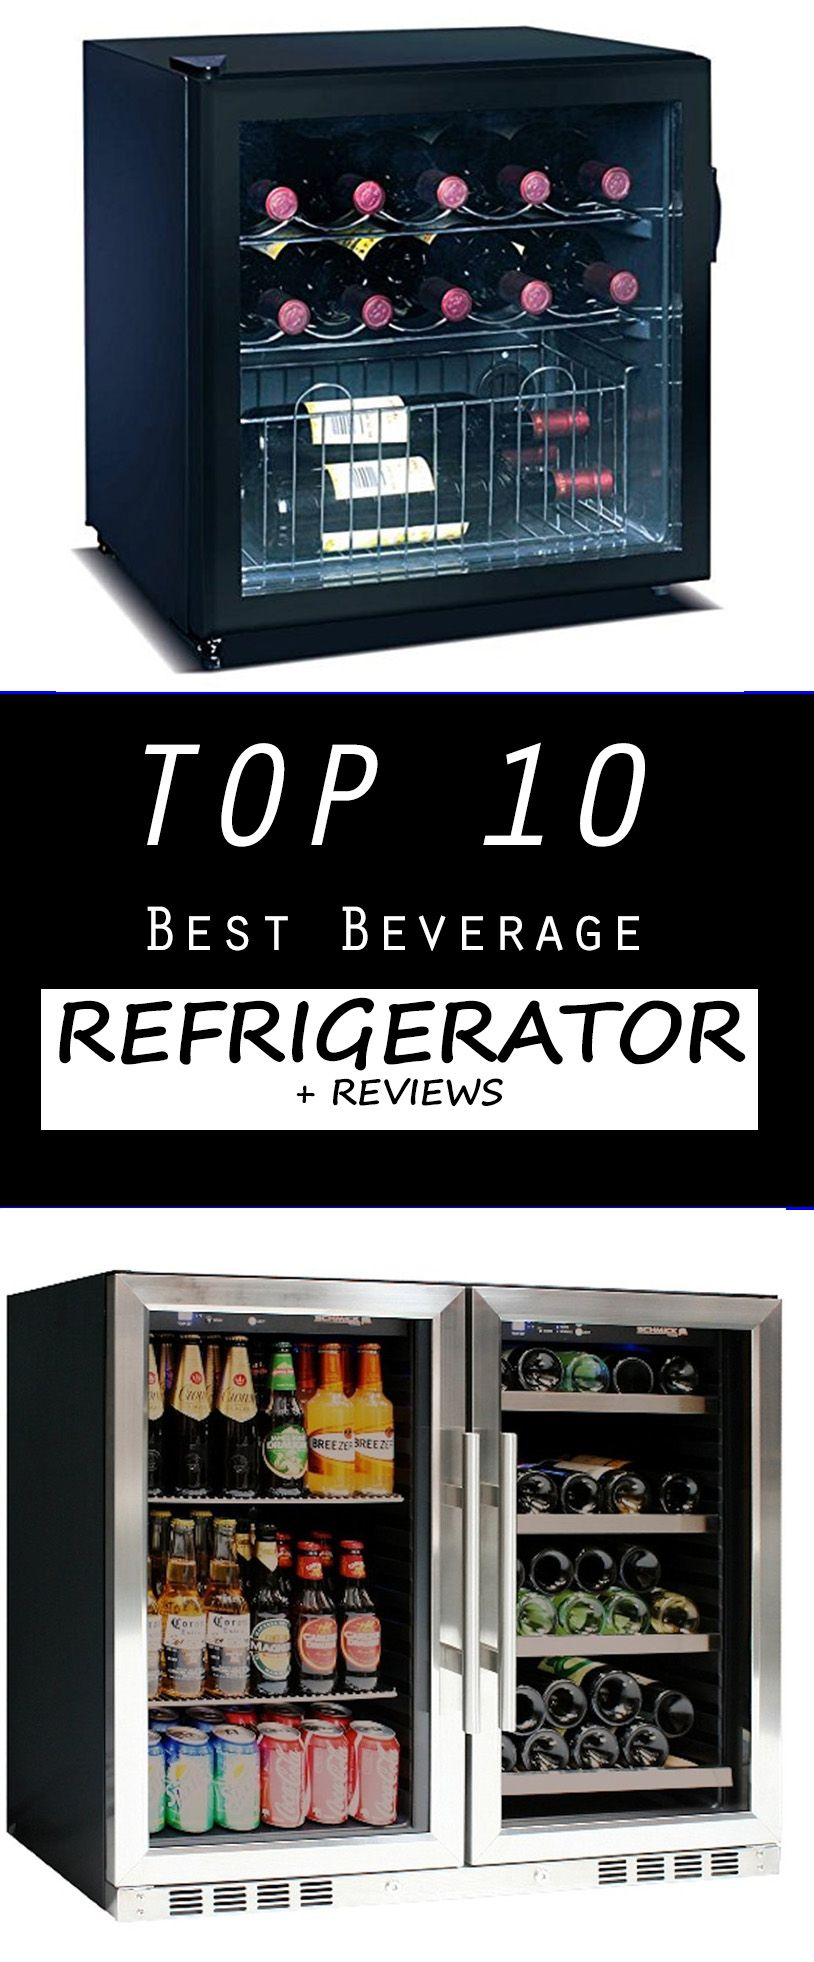 Top best beverage refrigerator reviews refrigerator beverage